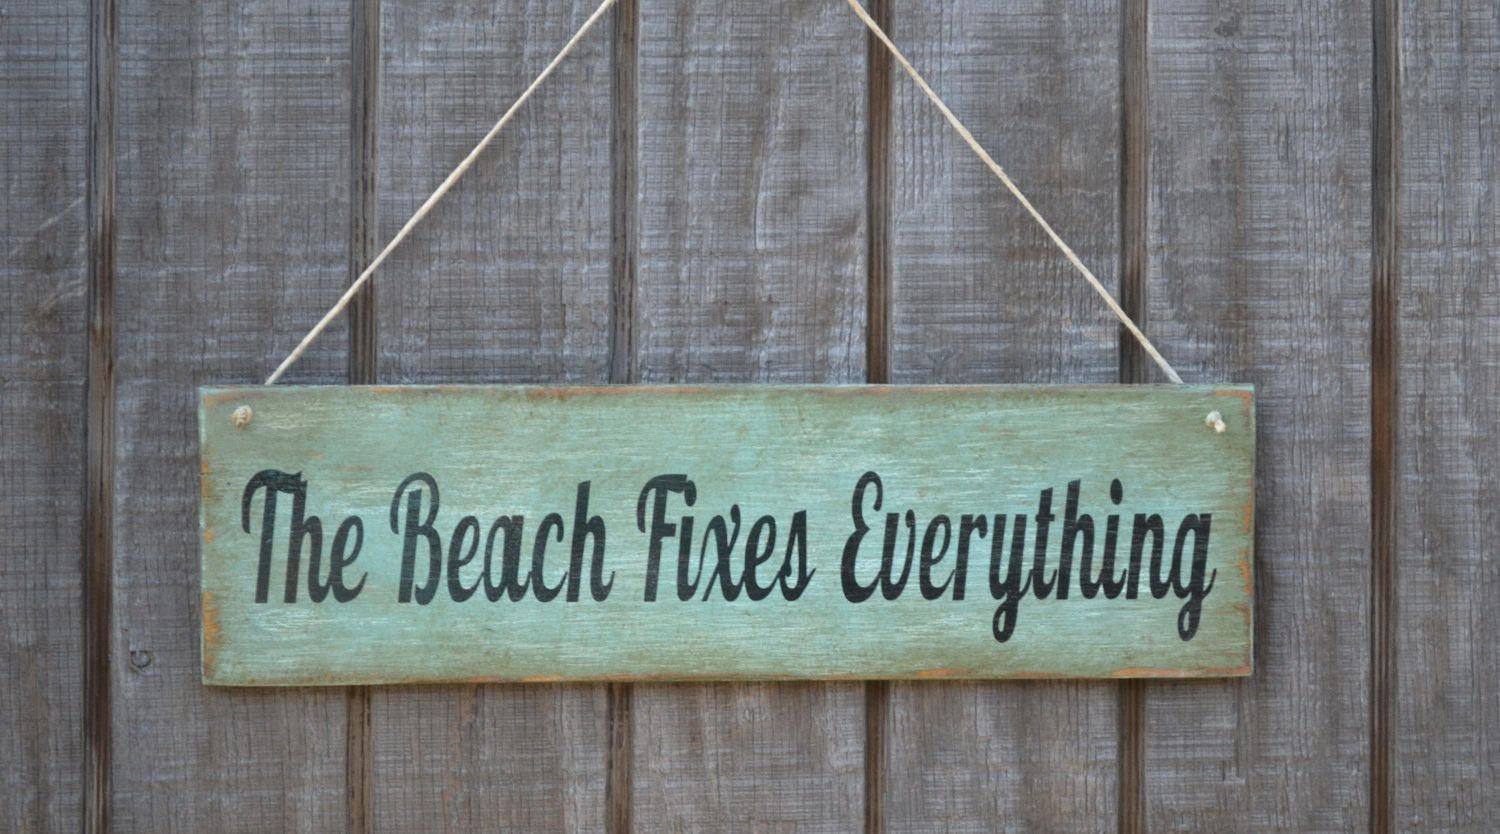 Distressed Wall Decor the beach fixes everything beach decor handpainted sign, no vinyl